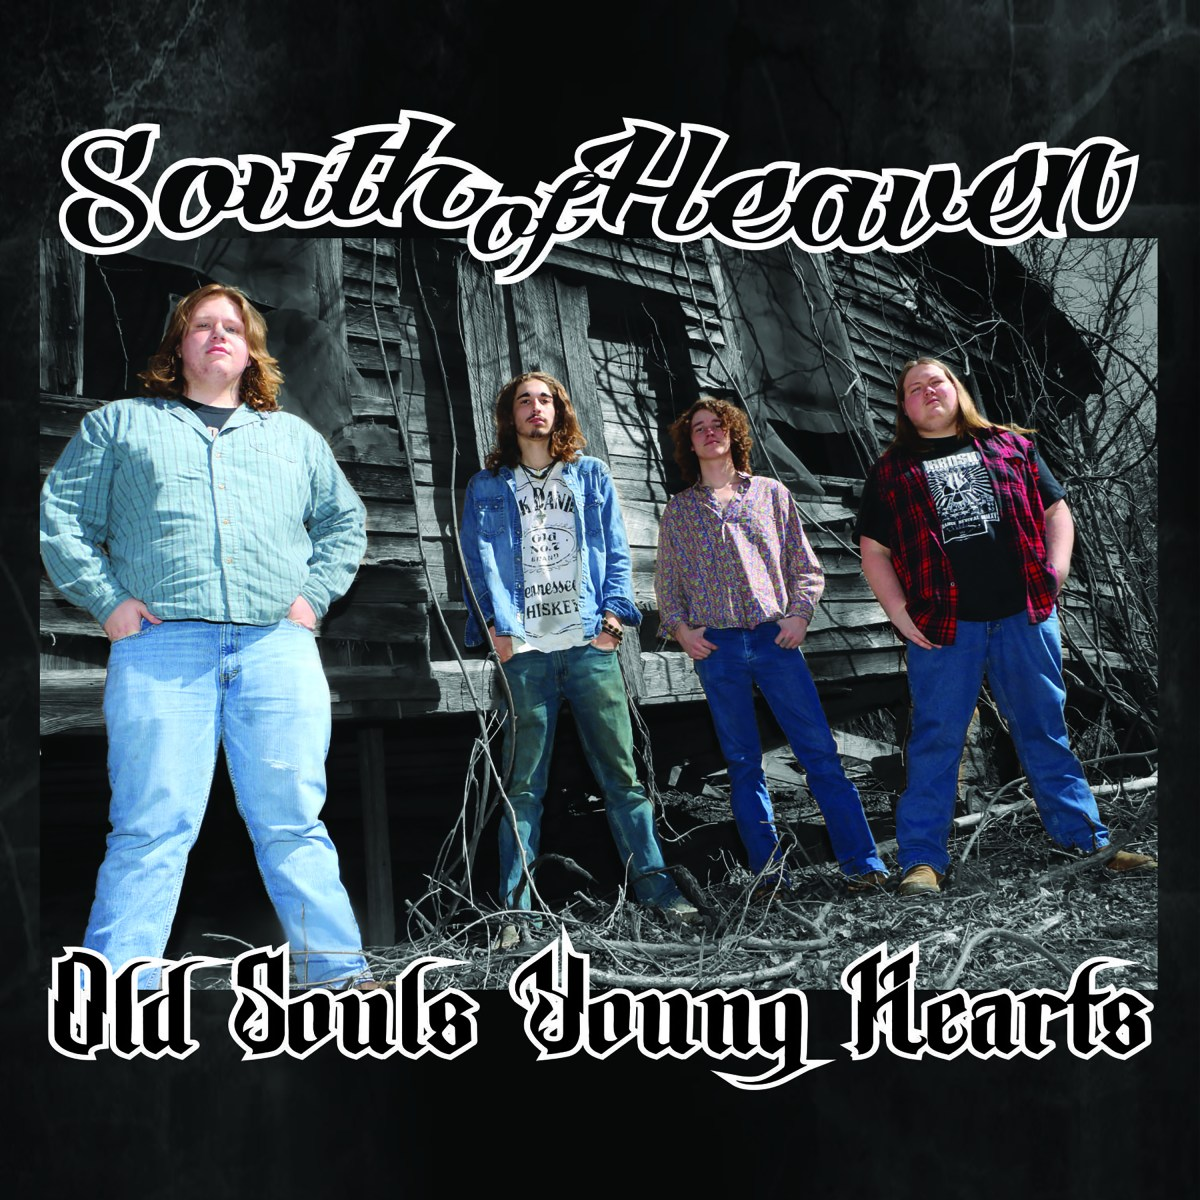 Teen Southern Rock Band, South Of Heaven Release Debut Album; Old Souls Young Hearts